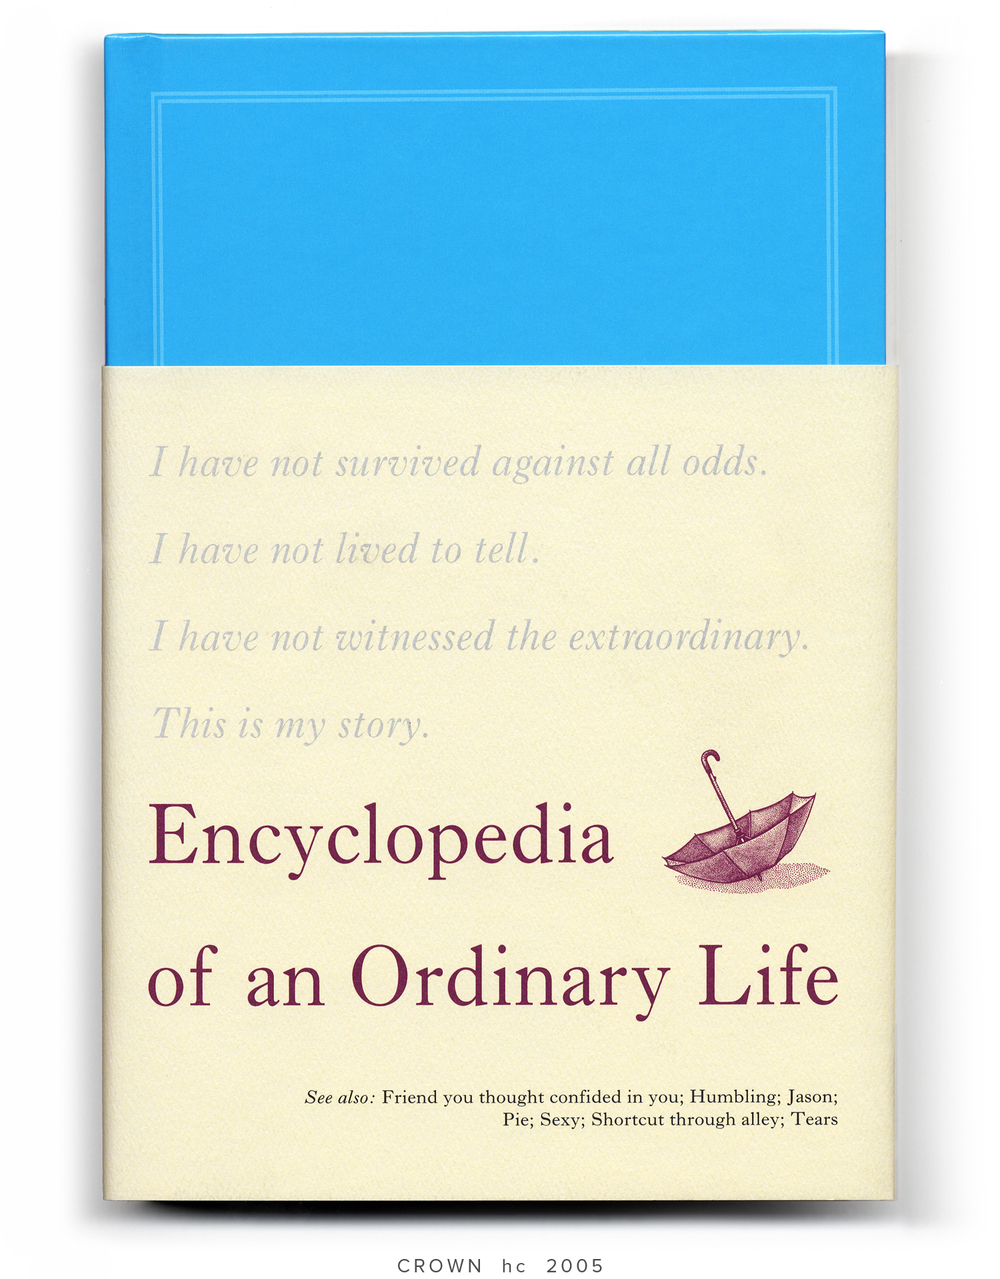 ENCYCLOPEDIA-OF-AN-ORDINARY-LIFE-hc-ss6.jpg